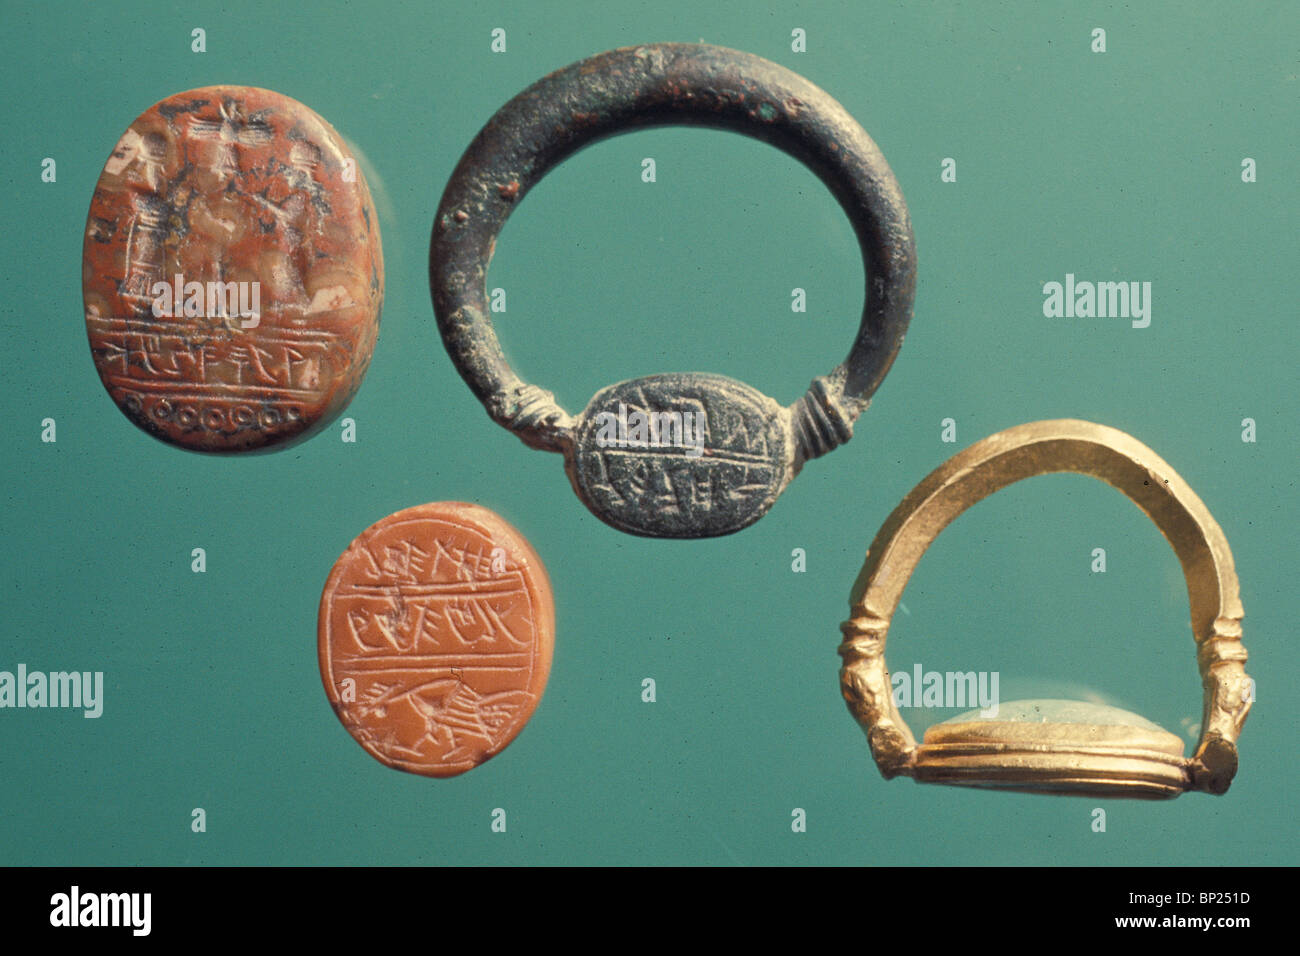 737. GROUP OF 8TH - 7TH C. B.C. HEBREW SIGNED RINGS Stock Photo